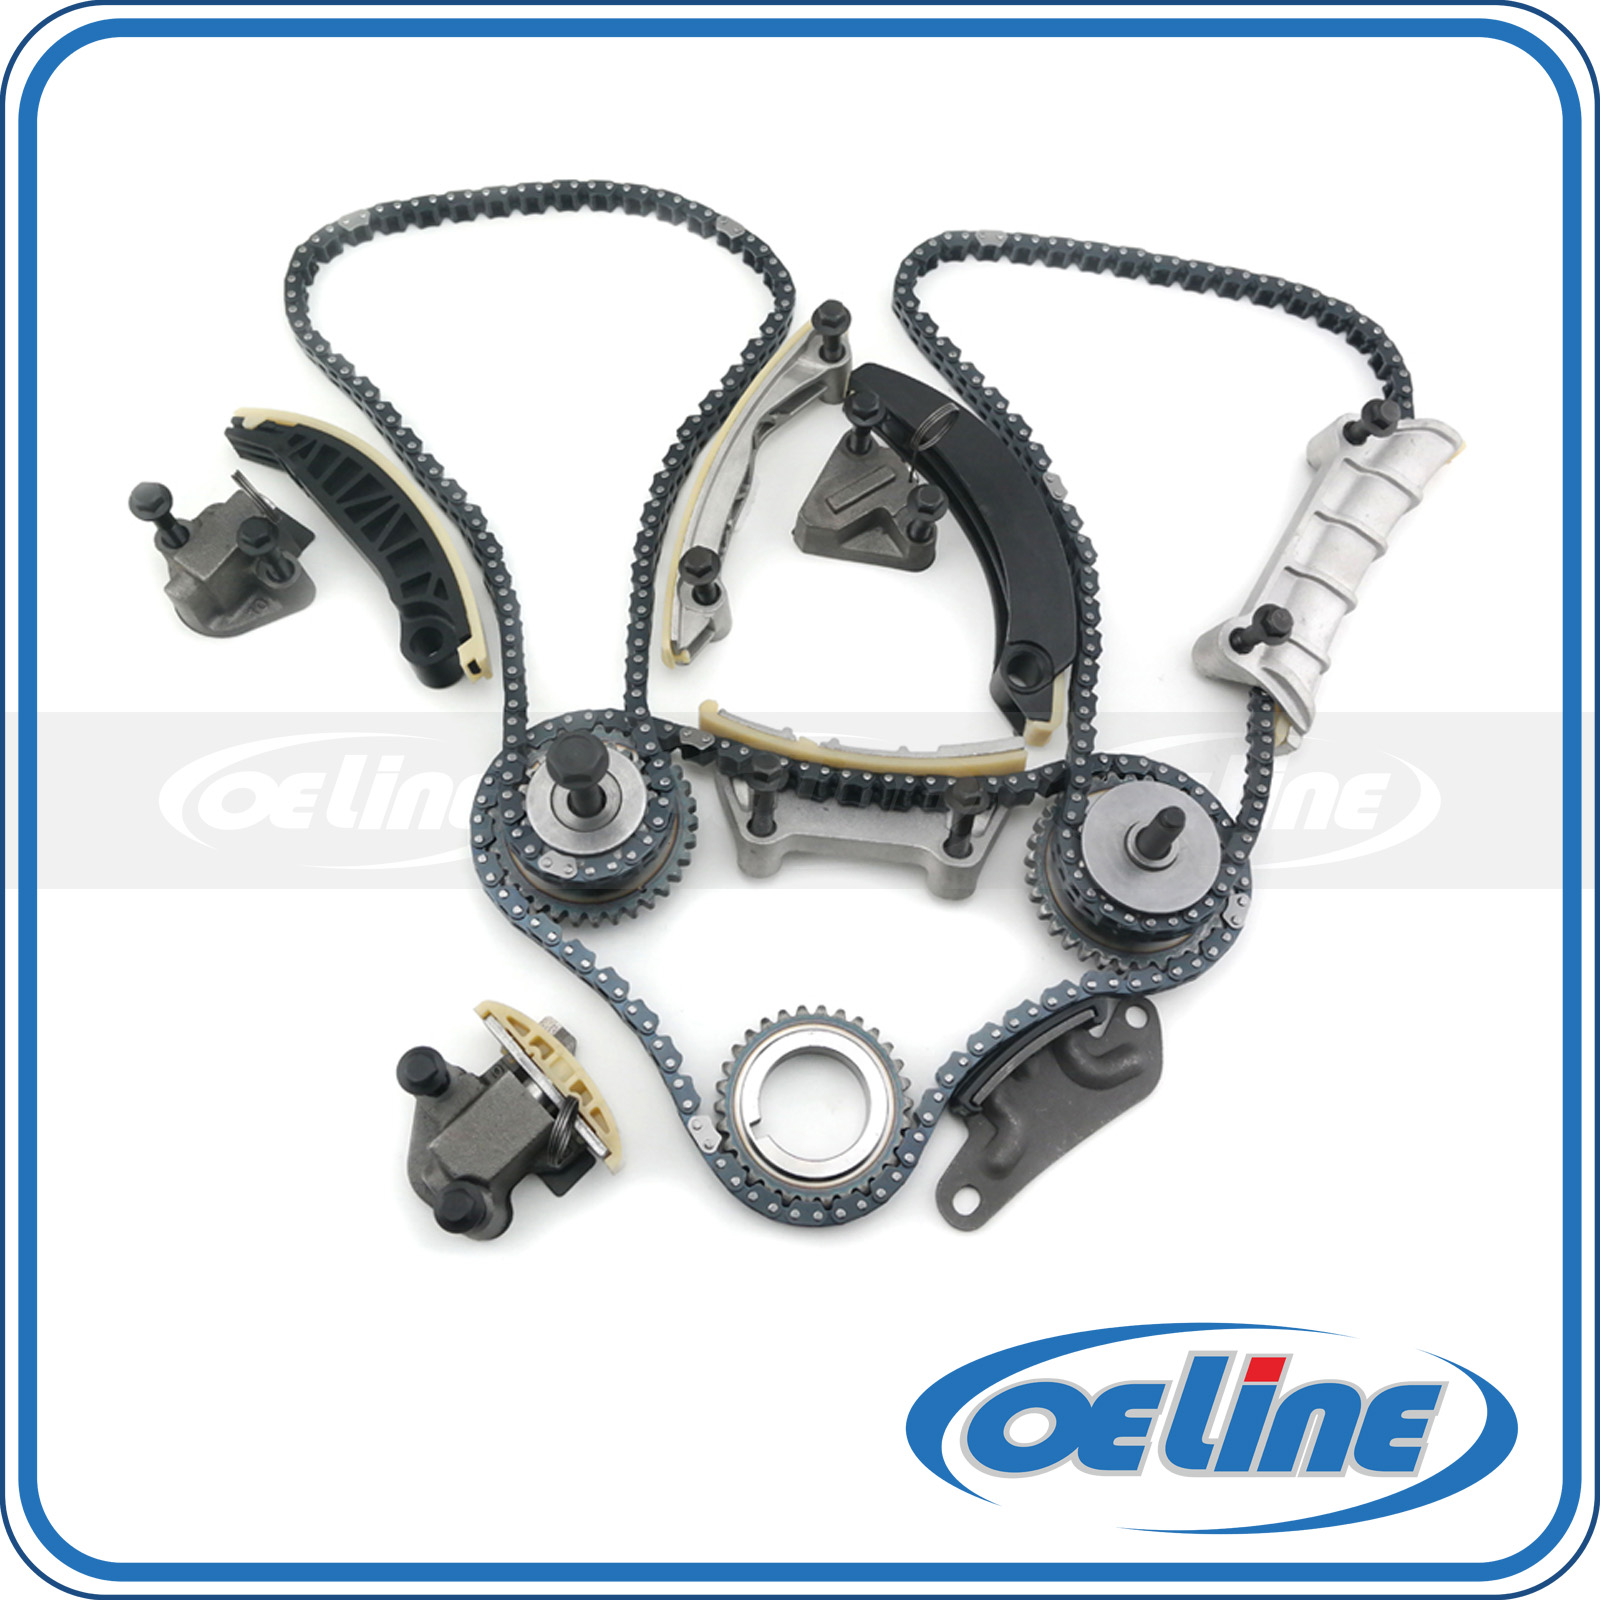 Timing Chain Kit For 06-17 Buick Chevrolet Cadillac SRX